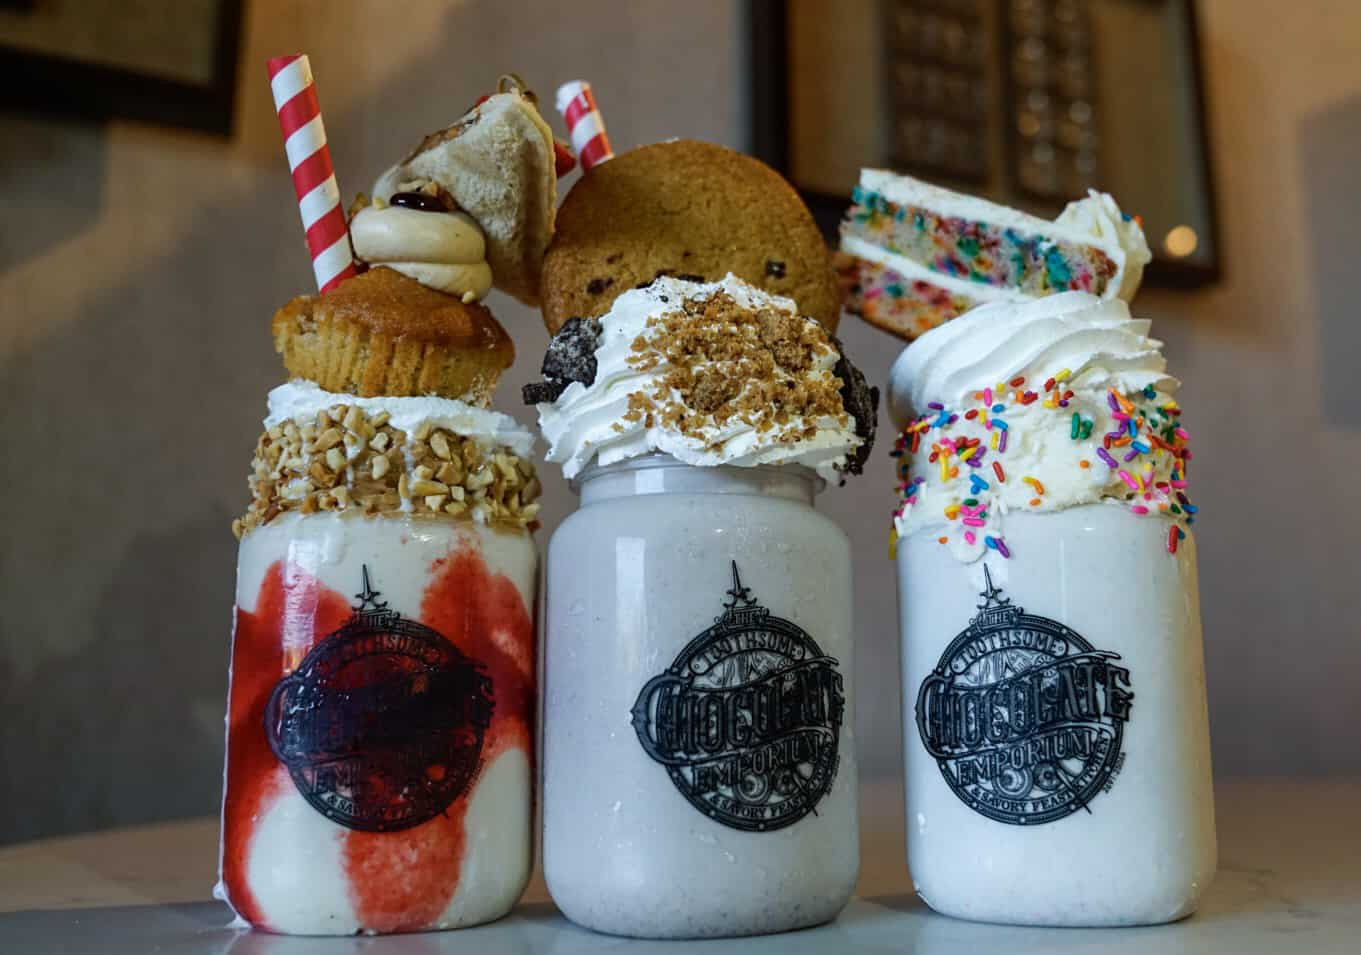 The three new milkshakes of Toothsome Chocolate Emporium